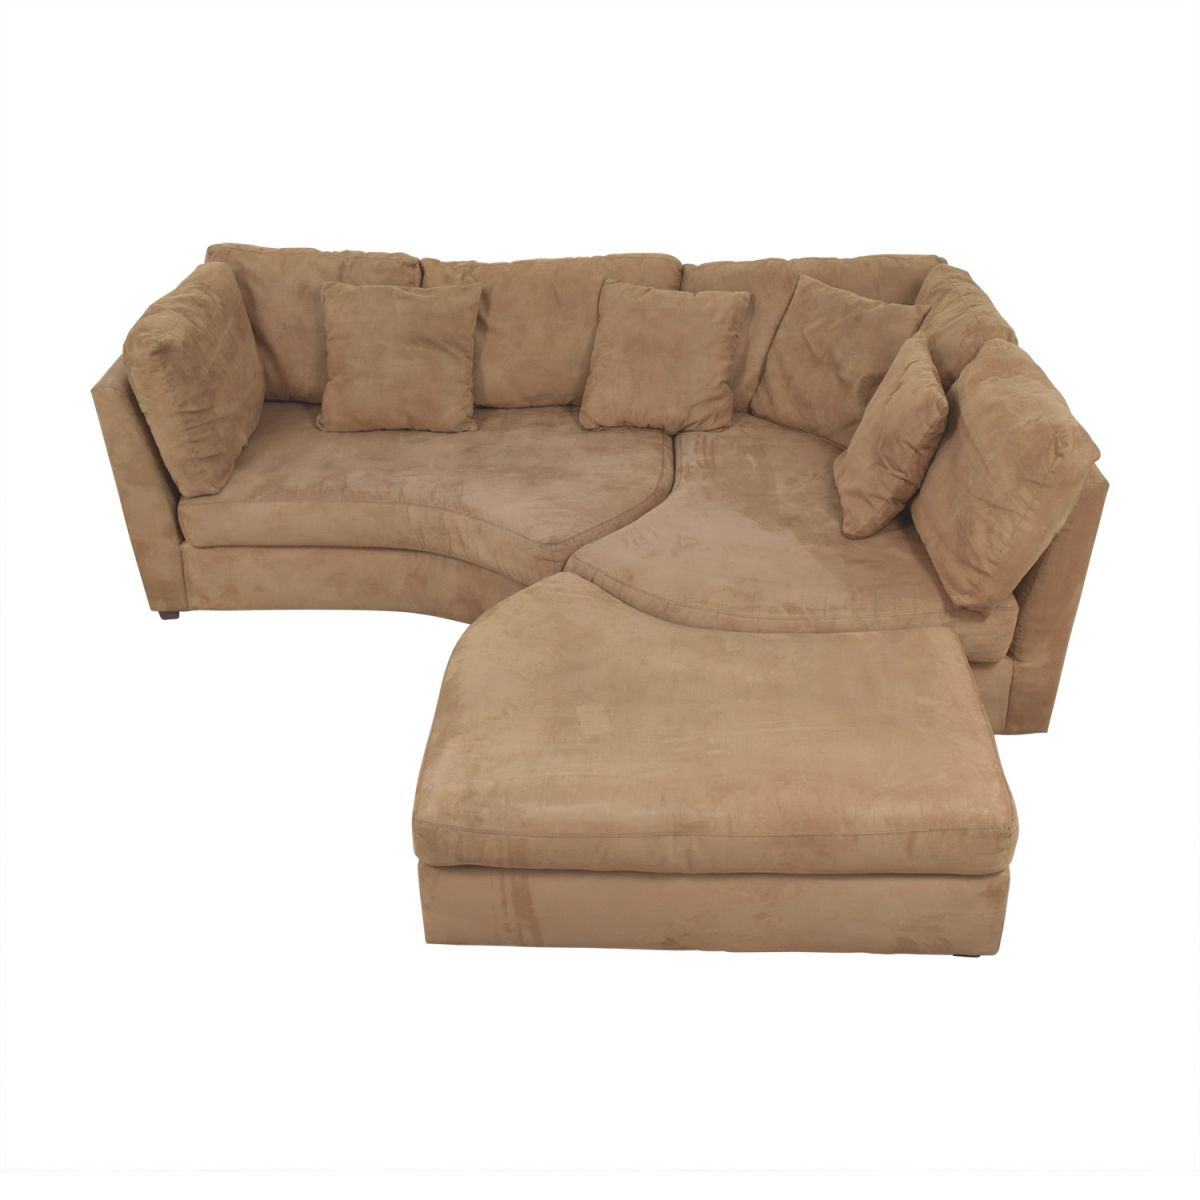 66% Off - Raymour & Flanigan Raymour & Flanigan Sectional Sofa With Ottoman / Sofas with Raymour And Flanigan Sectional Sofas